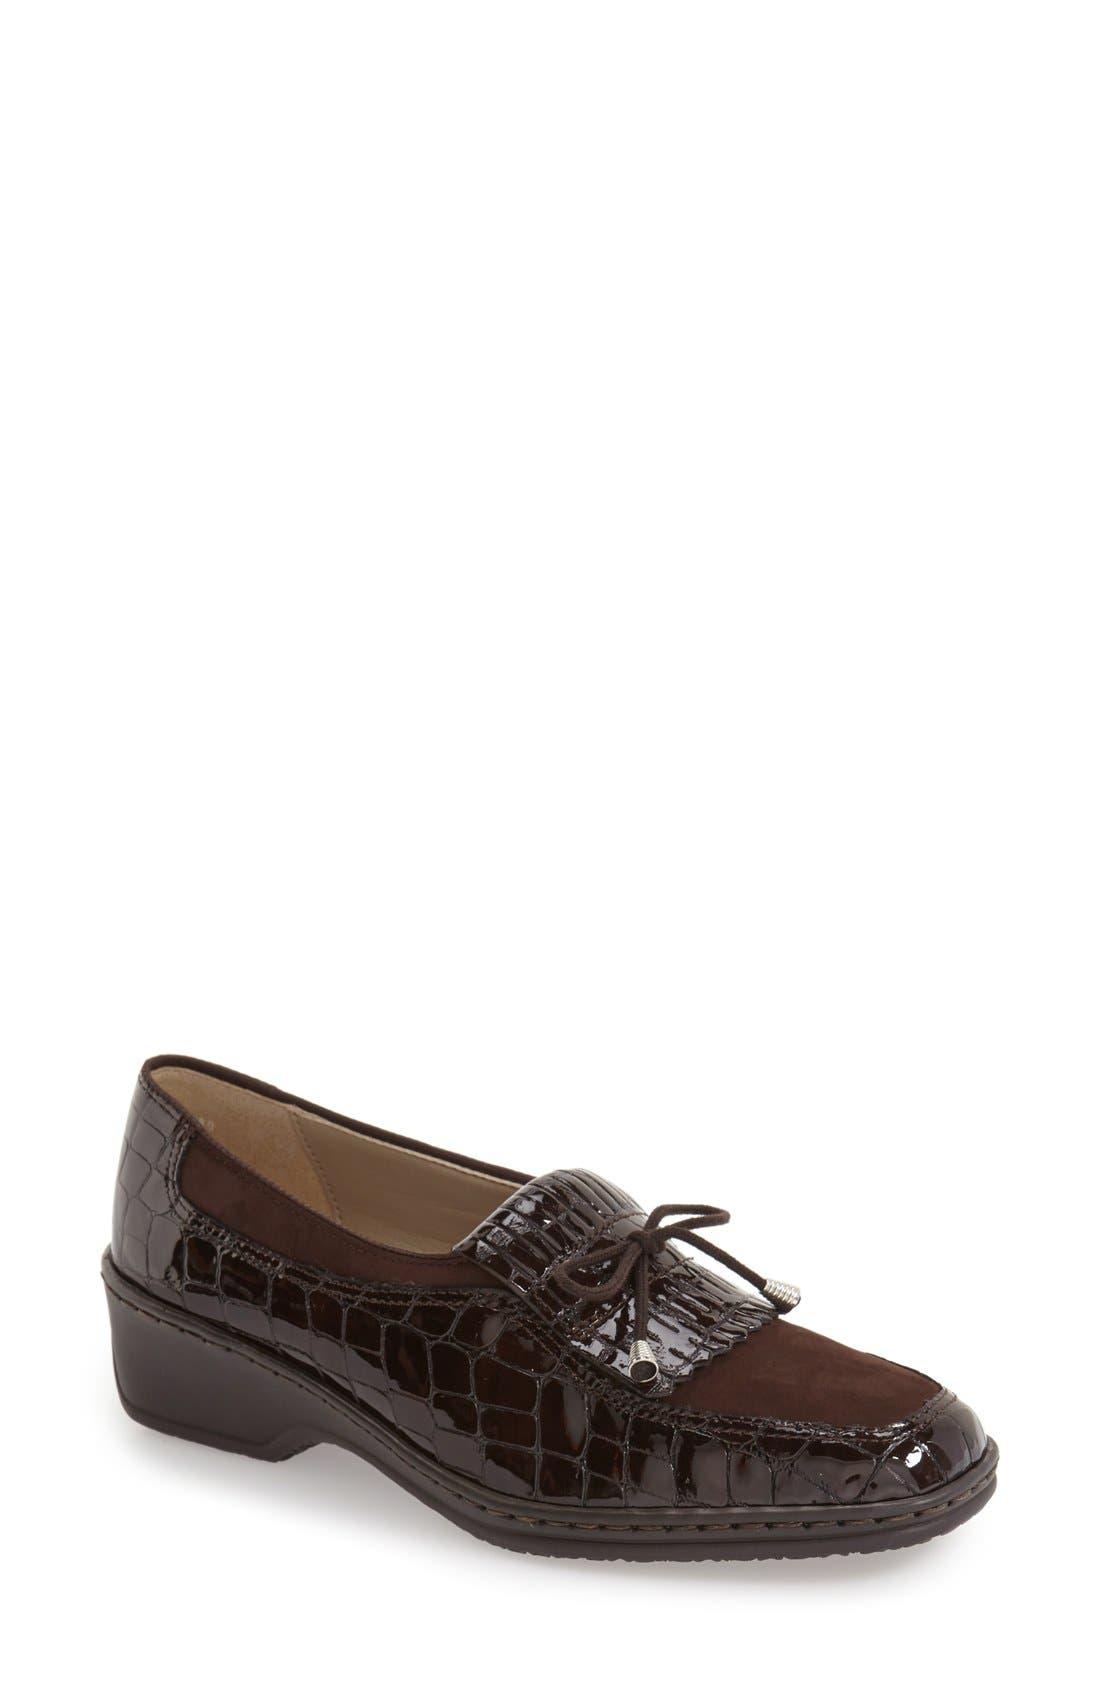 'Rachel' Loafer,                         Main,                         color, BROWN NUBUCK LEATHER